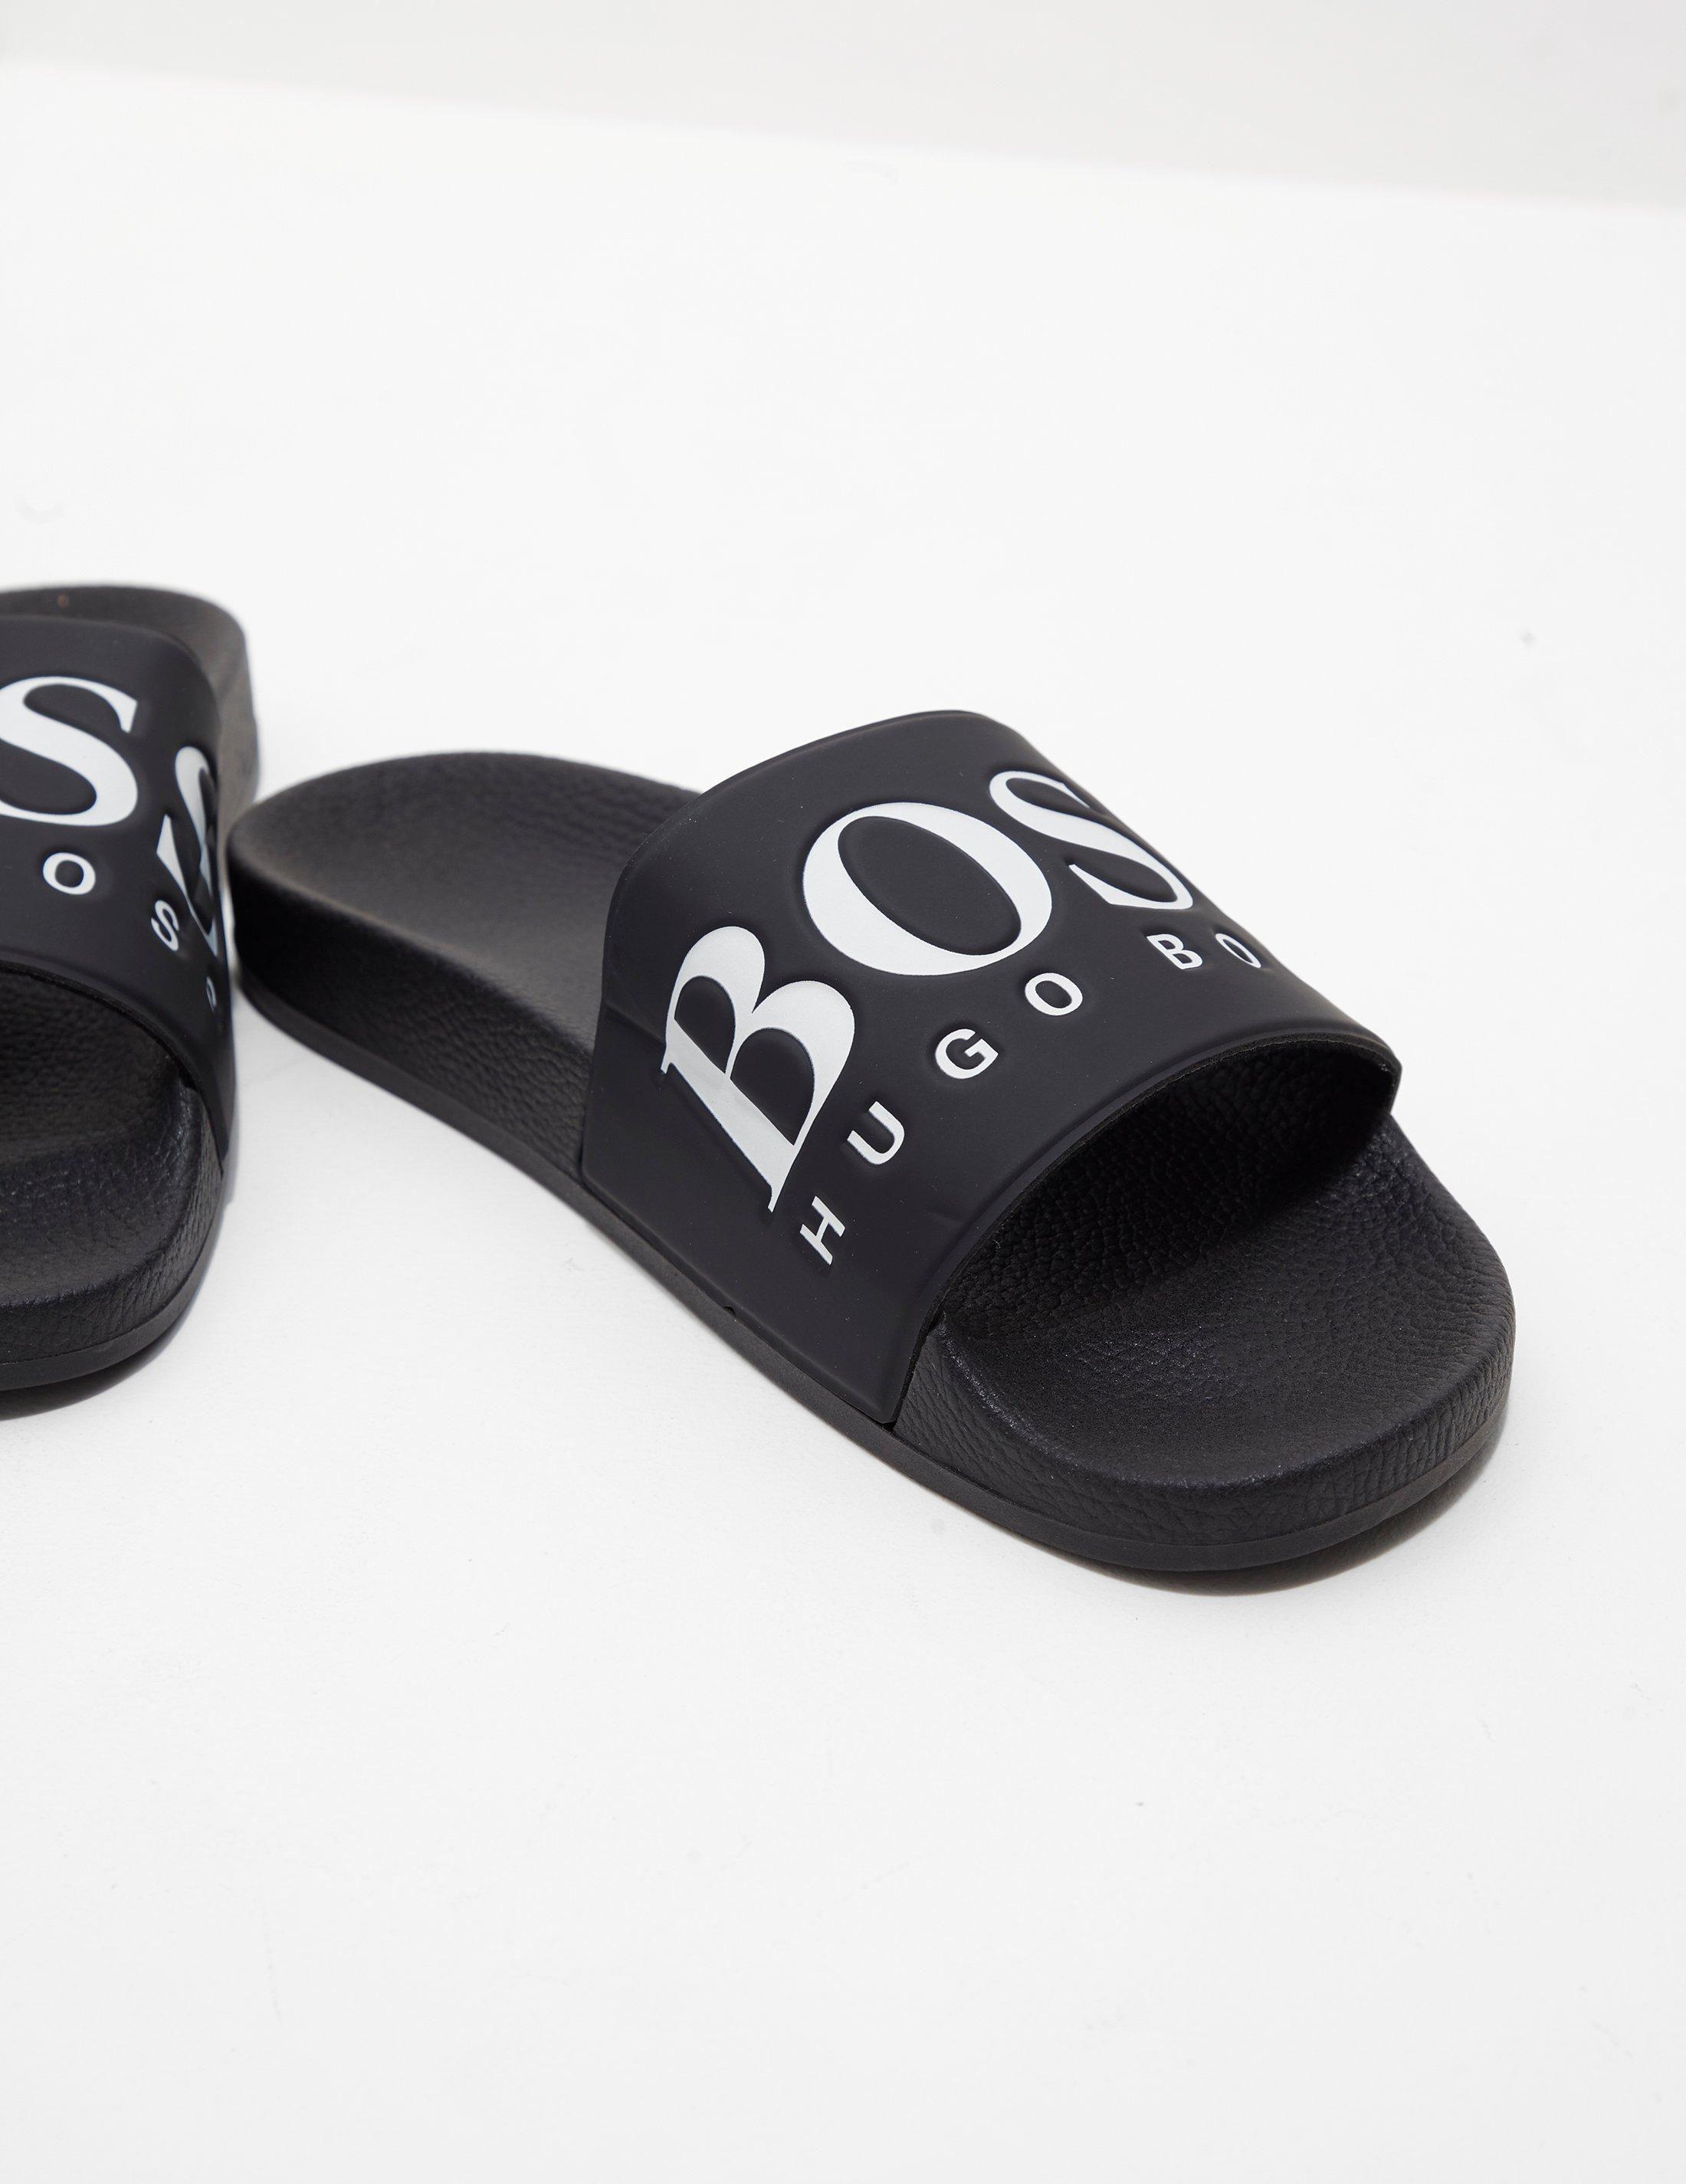 43ea4db5f980 Lyst - BOSS Mens Solar Slides - Exclusively To Tessuti Black in Black for  Men